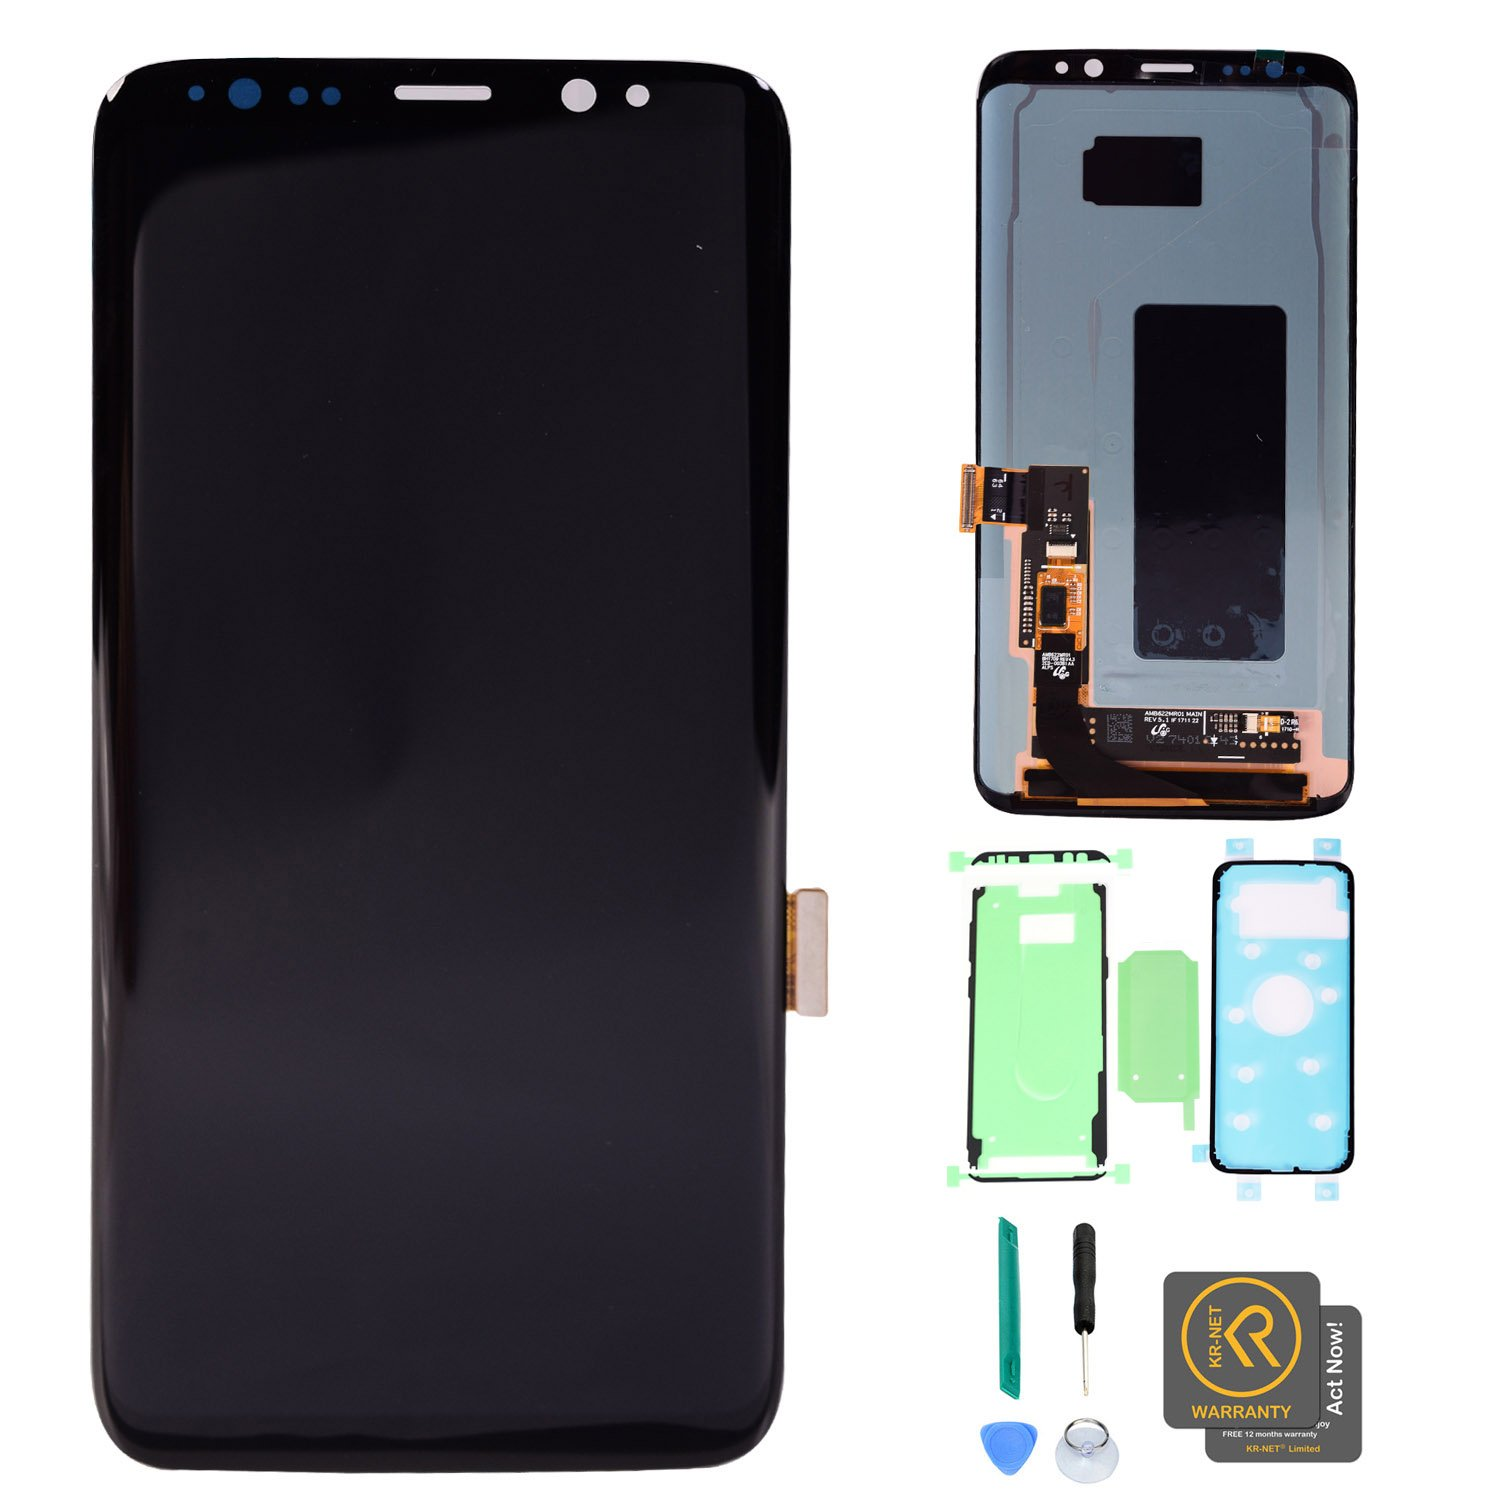 KR-NET AMOLED LCD Display Touch Screen Digitizer Assembly Replacement + Full set PreCut Adhesive for Samsung Galaxy S8+ Plus G955F G955A G955P G955V G955T G955R4